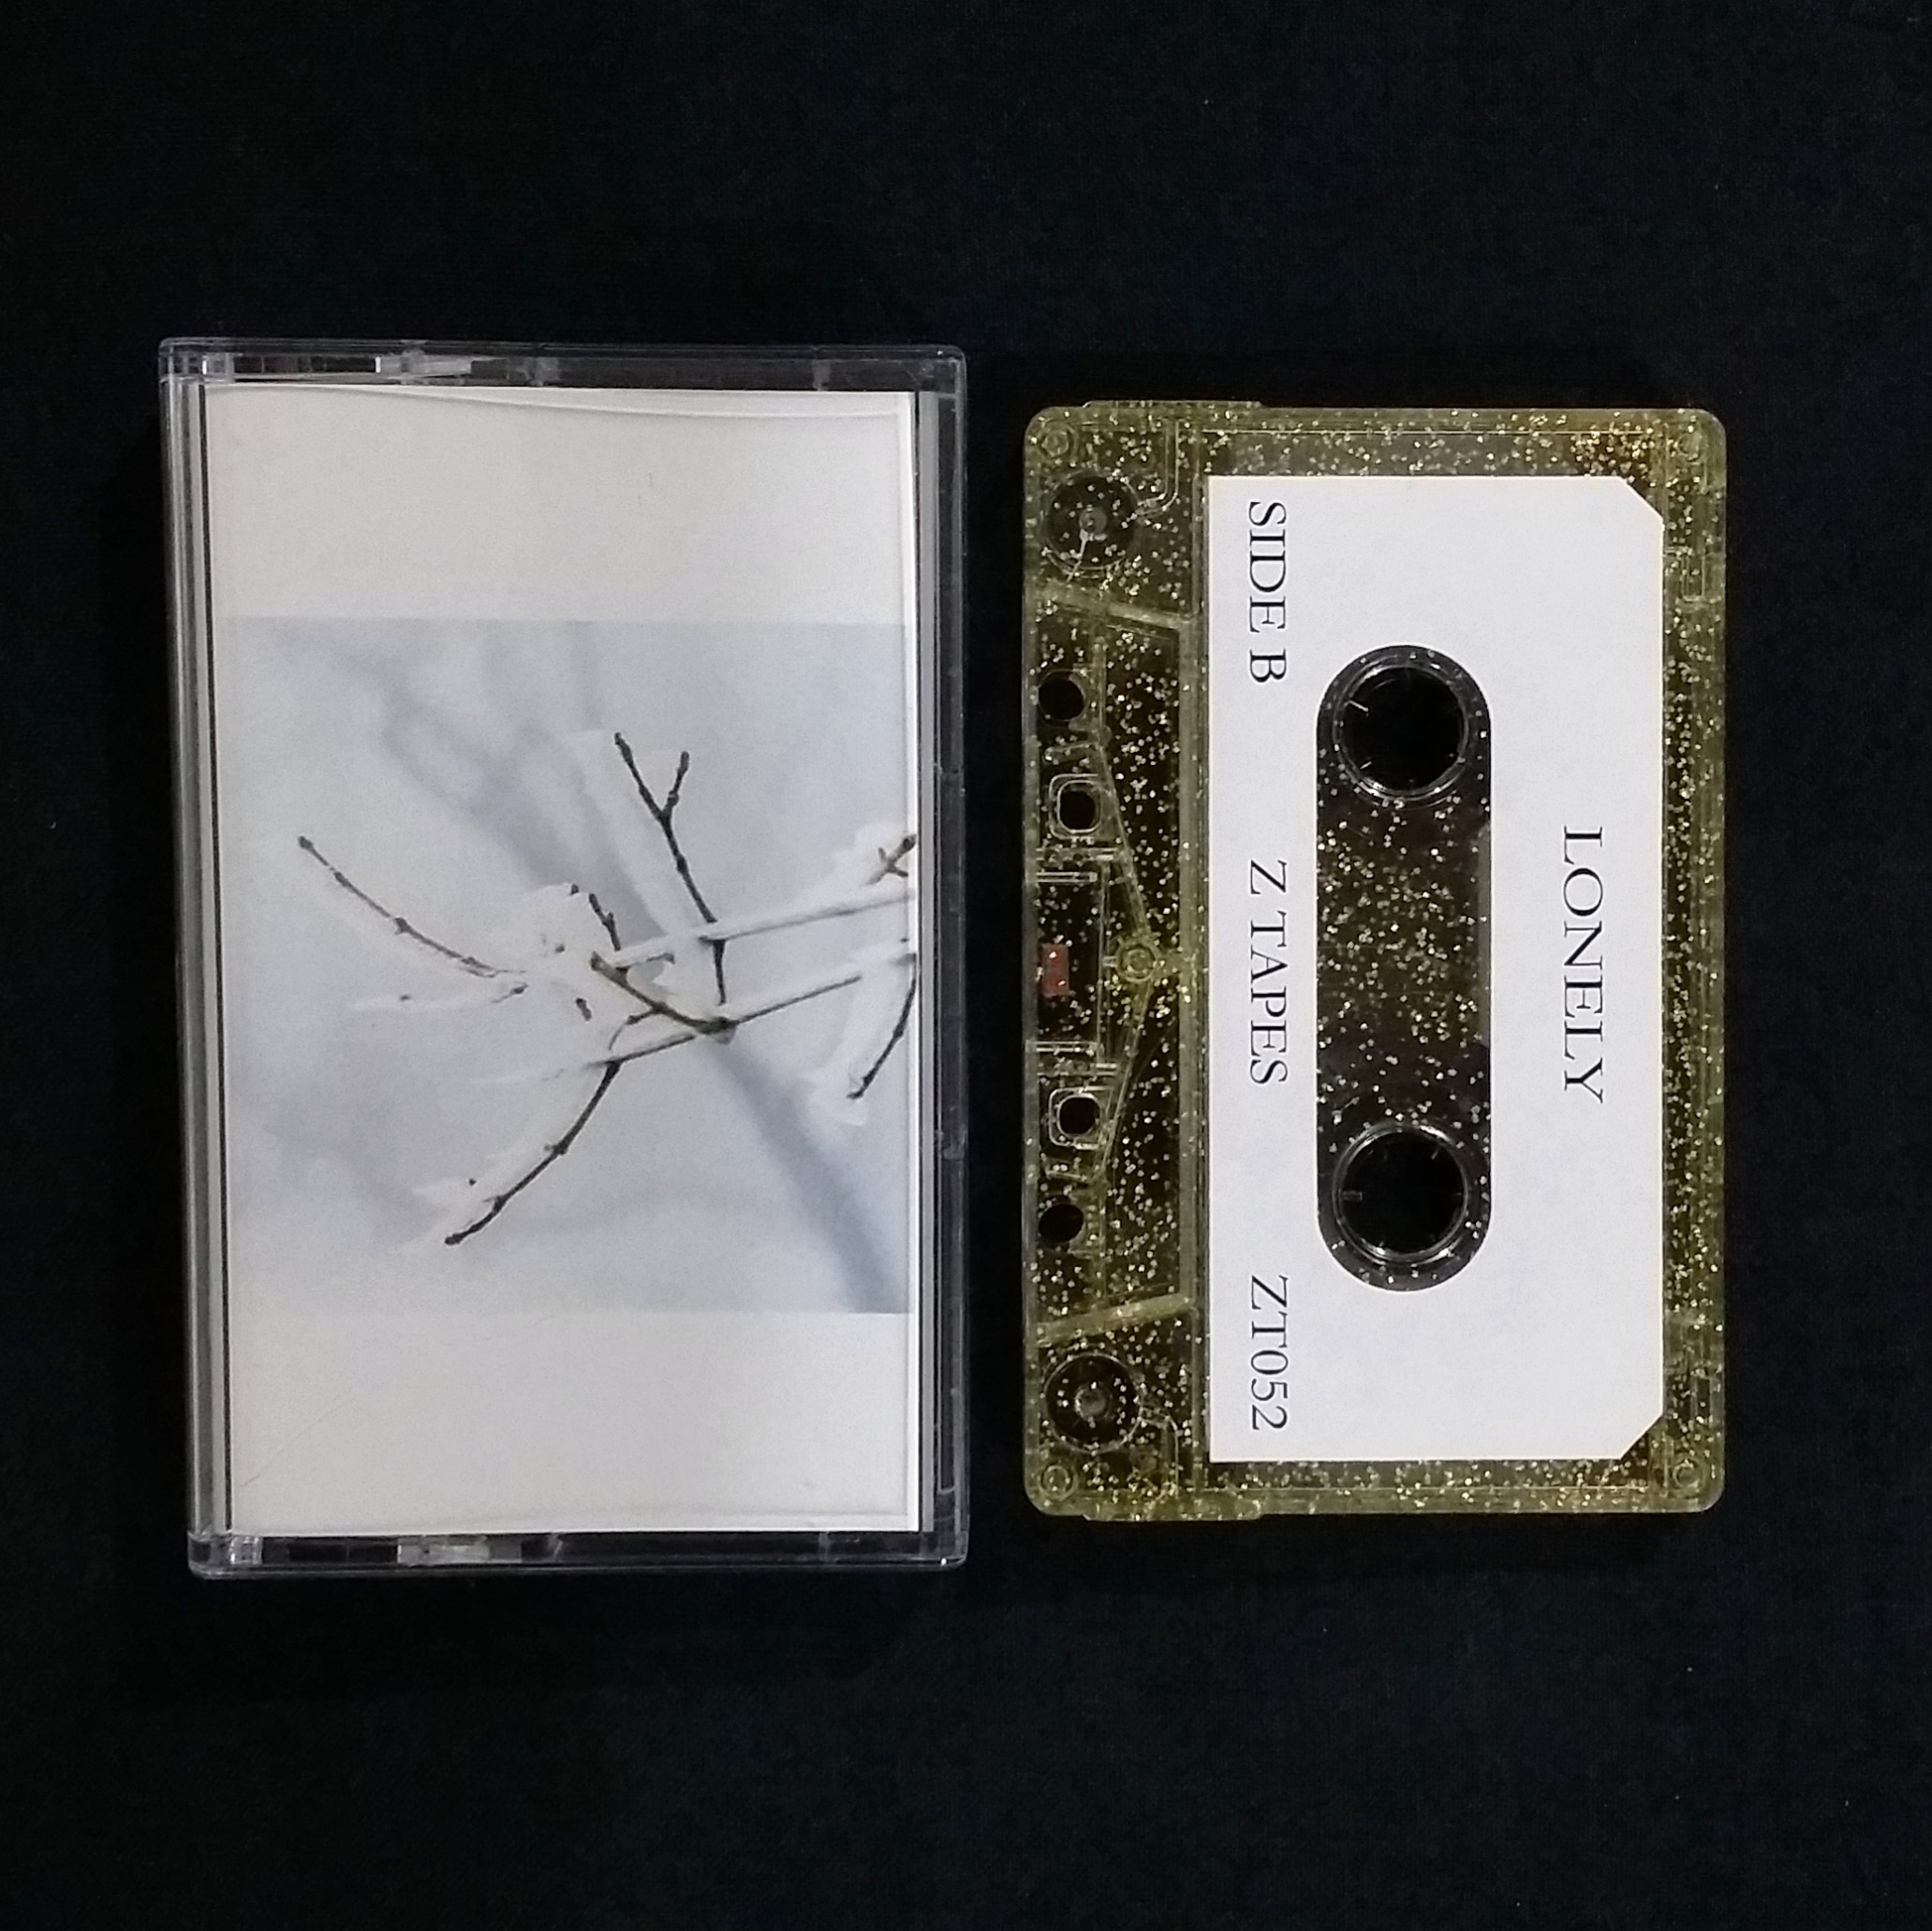 [SOLD] Dying Adolescence - lonely (Z Tapes)